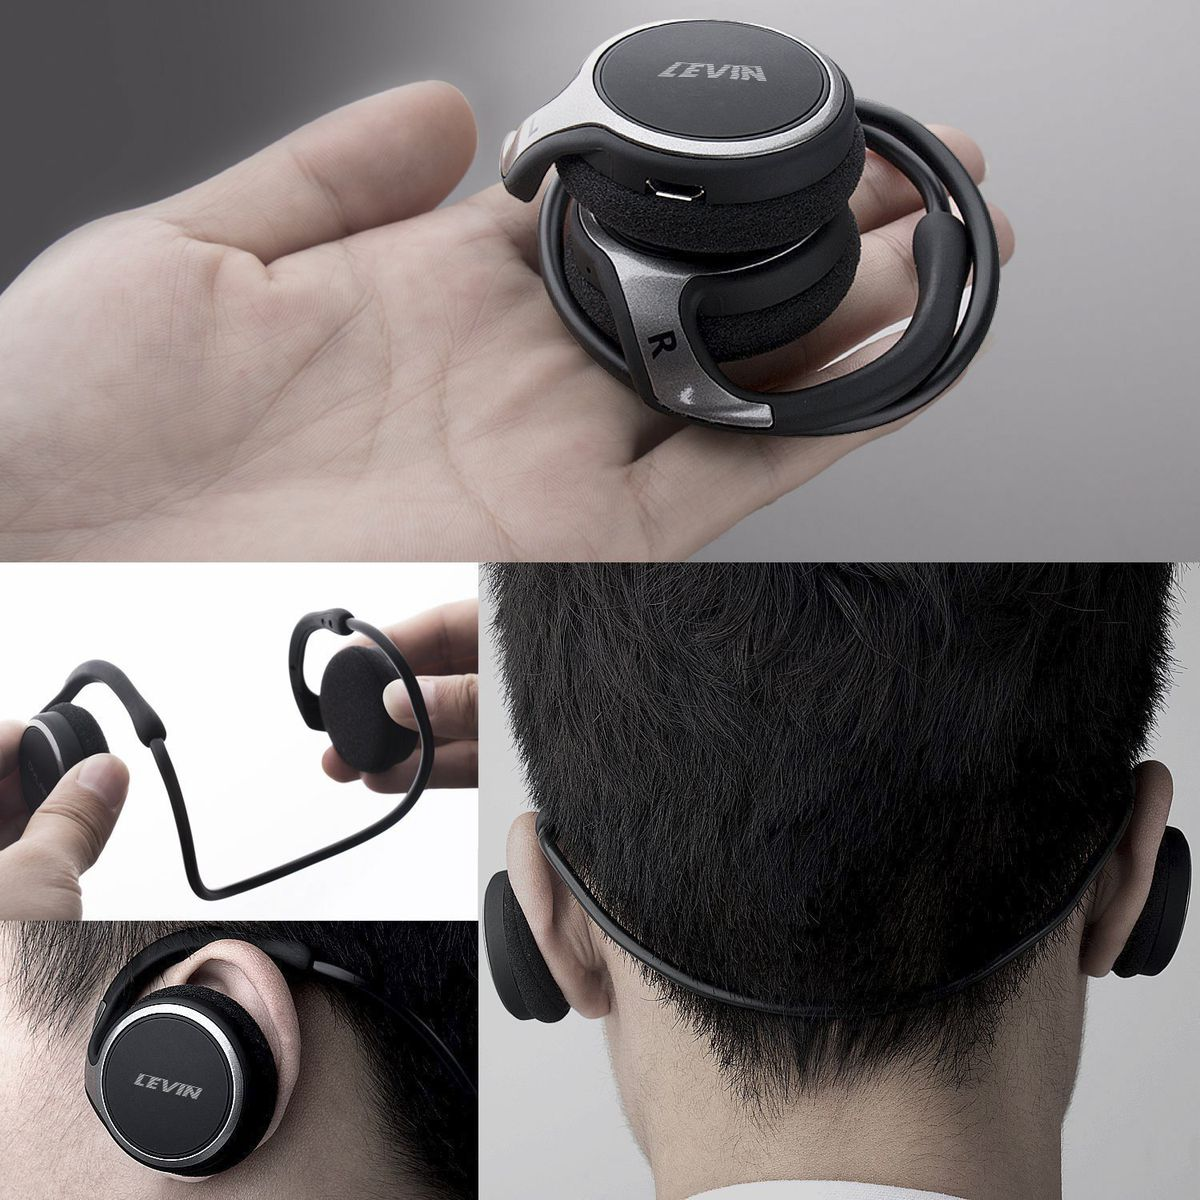 Levin Bluetooth 4 1 Wireless Headphones